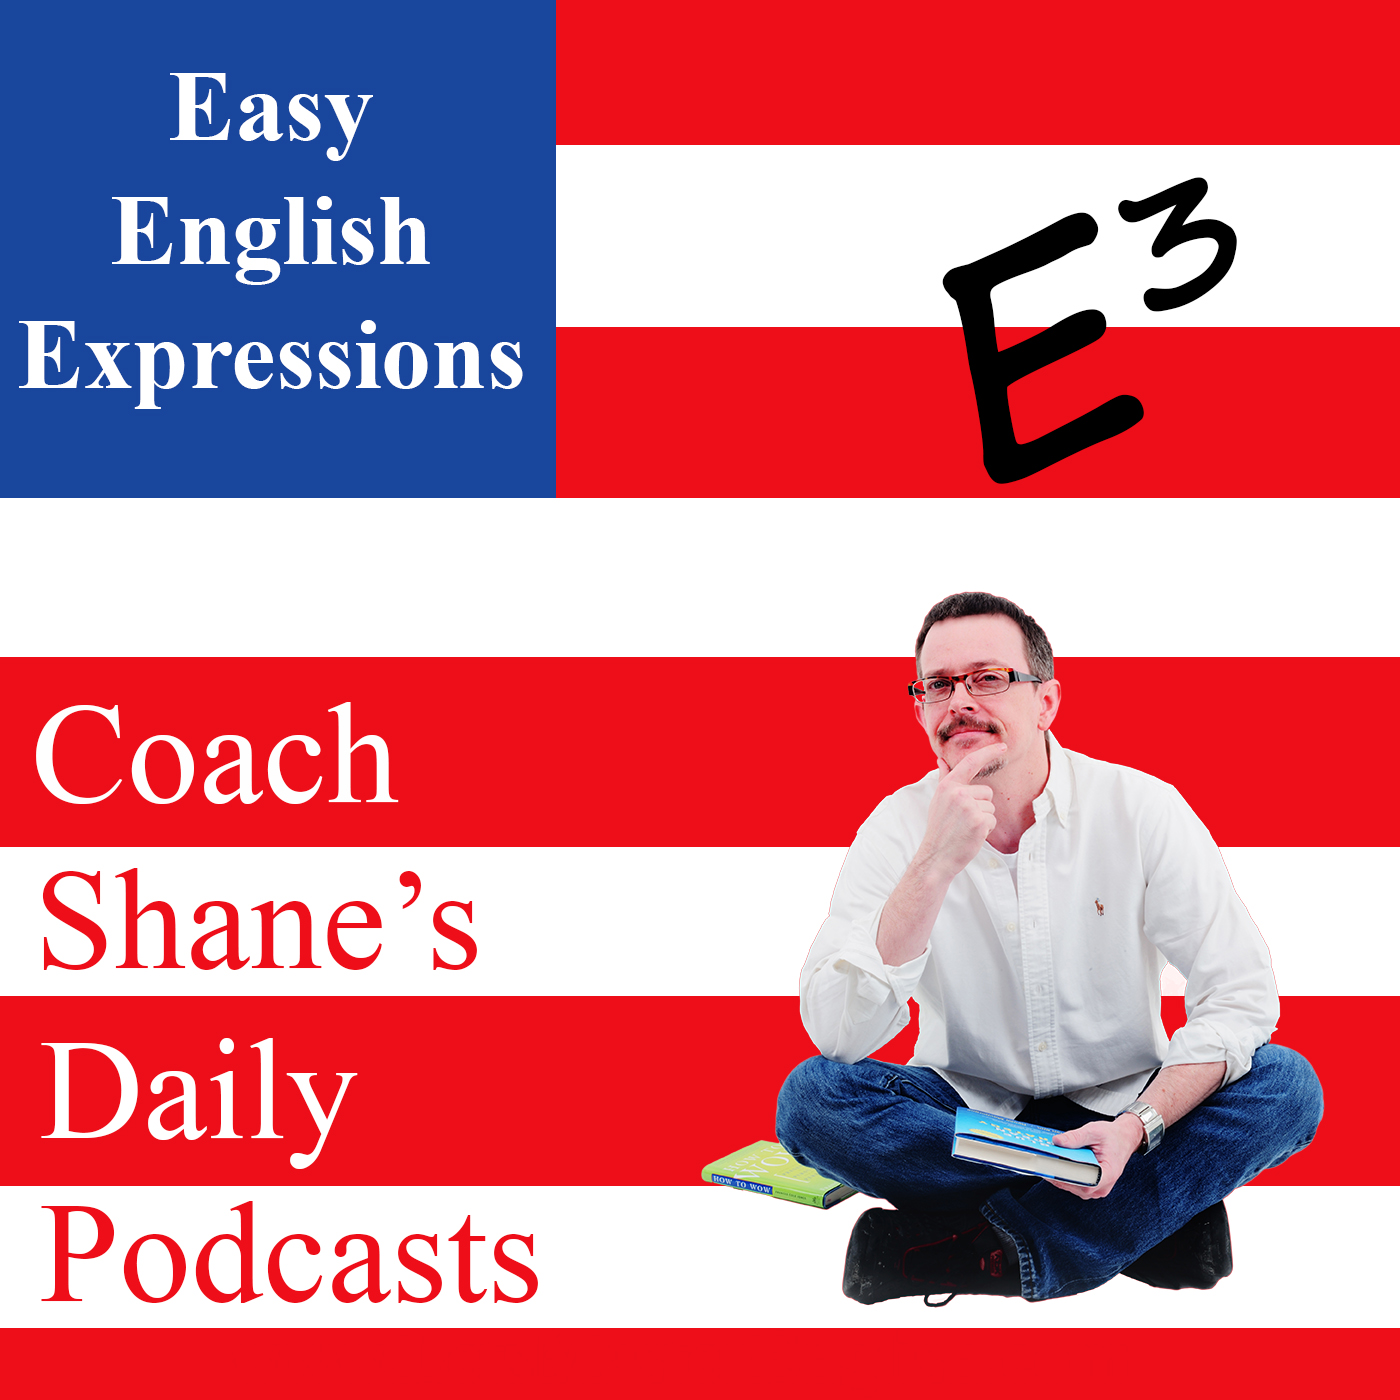 51 Daily Easy English Expression PODCAST—Keep it down!